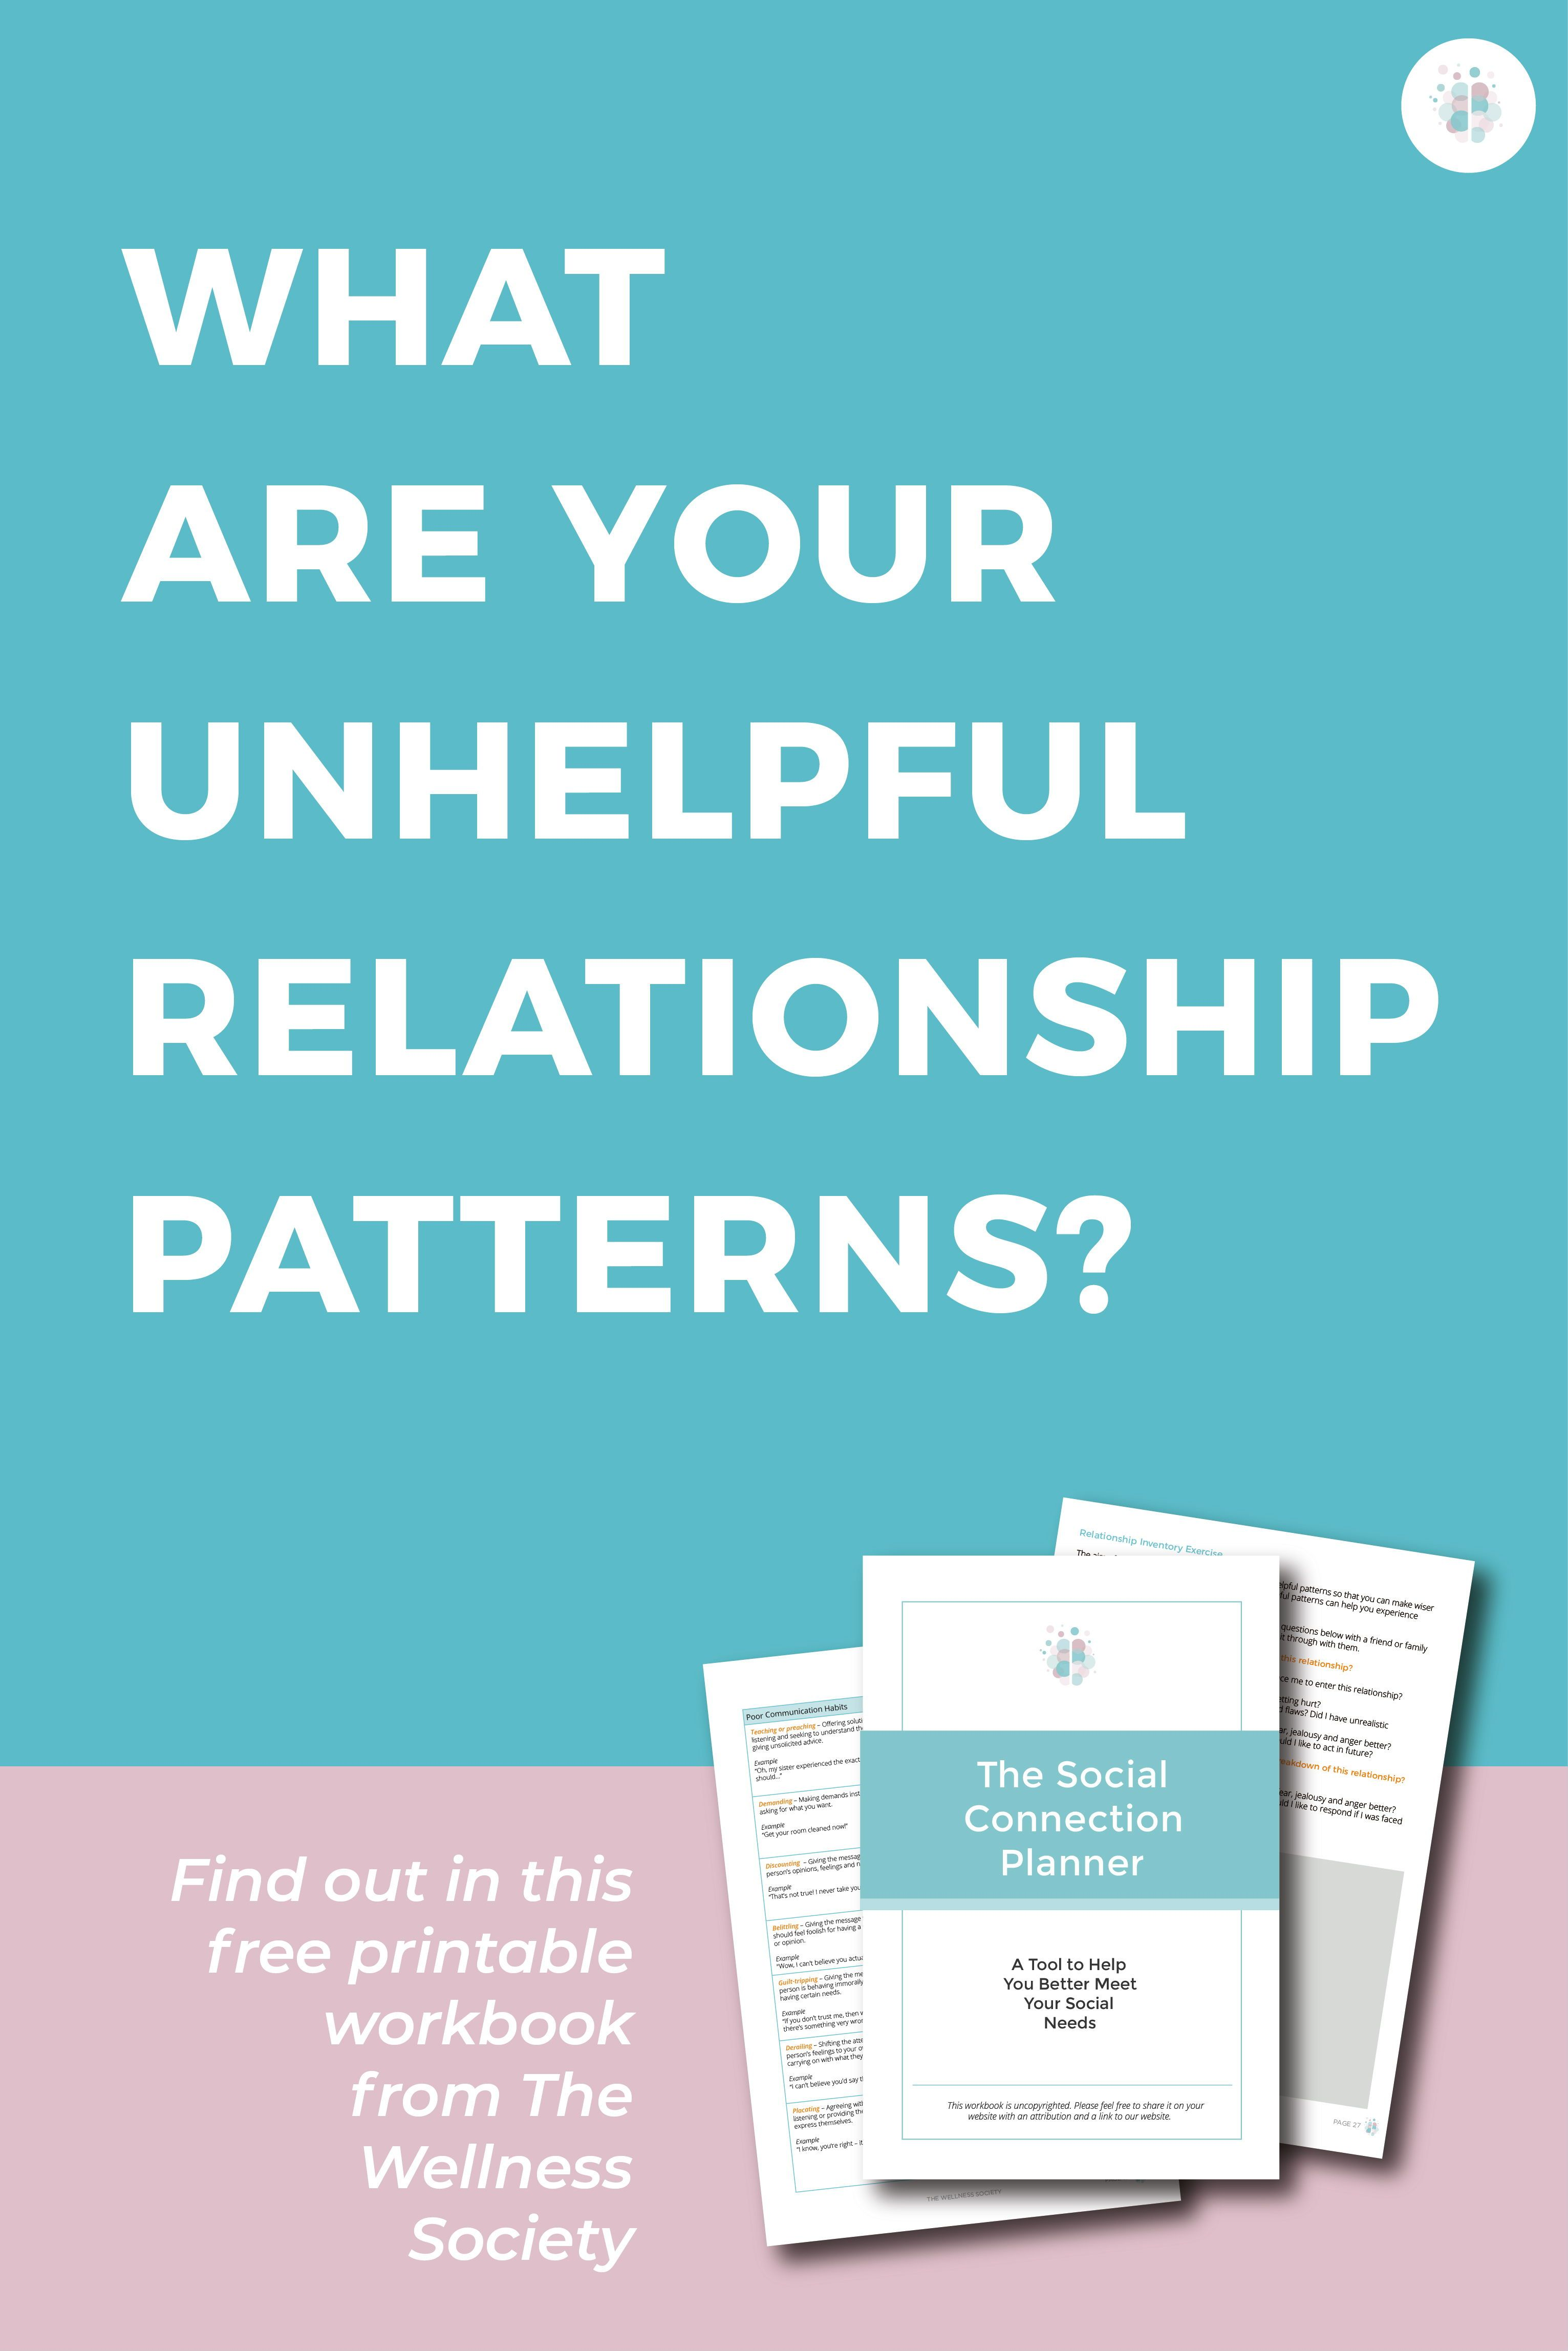 Gain Insight Into Your Unhelpful Relationship Patterns